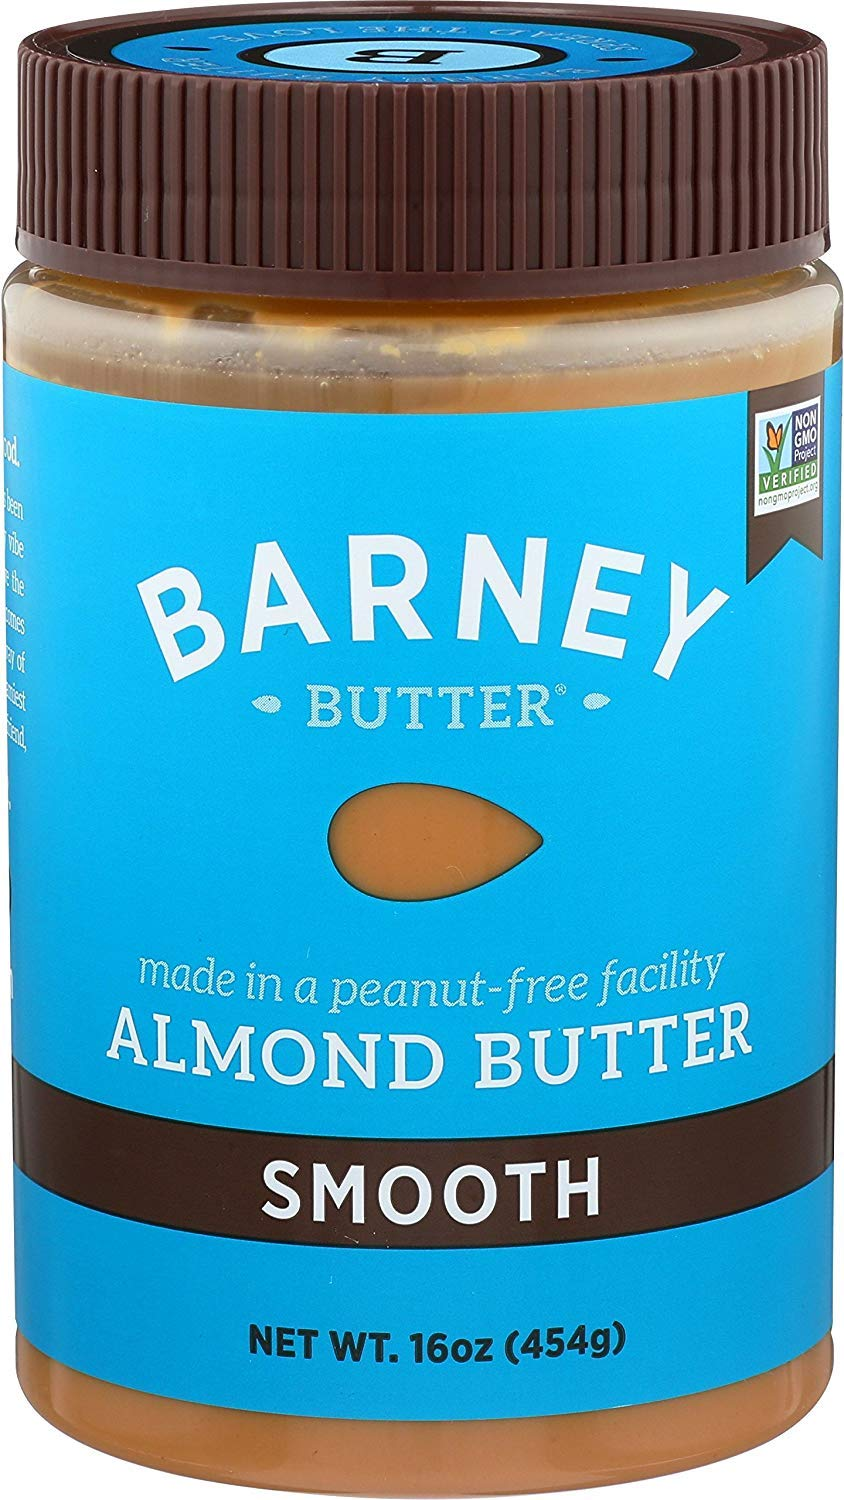 Barney Butter Almond Butter, Smooth, 16 Ounce (Limited Edition)